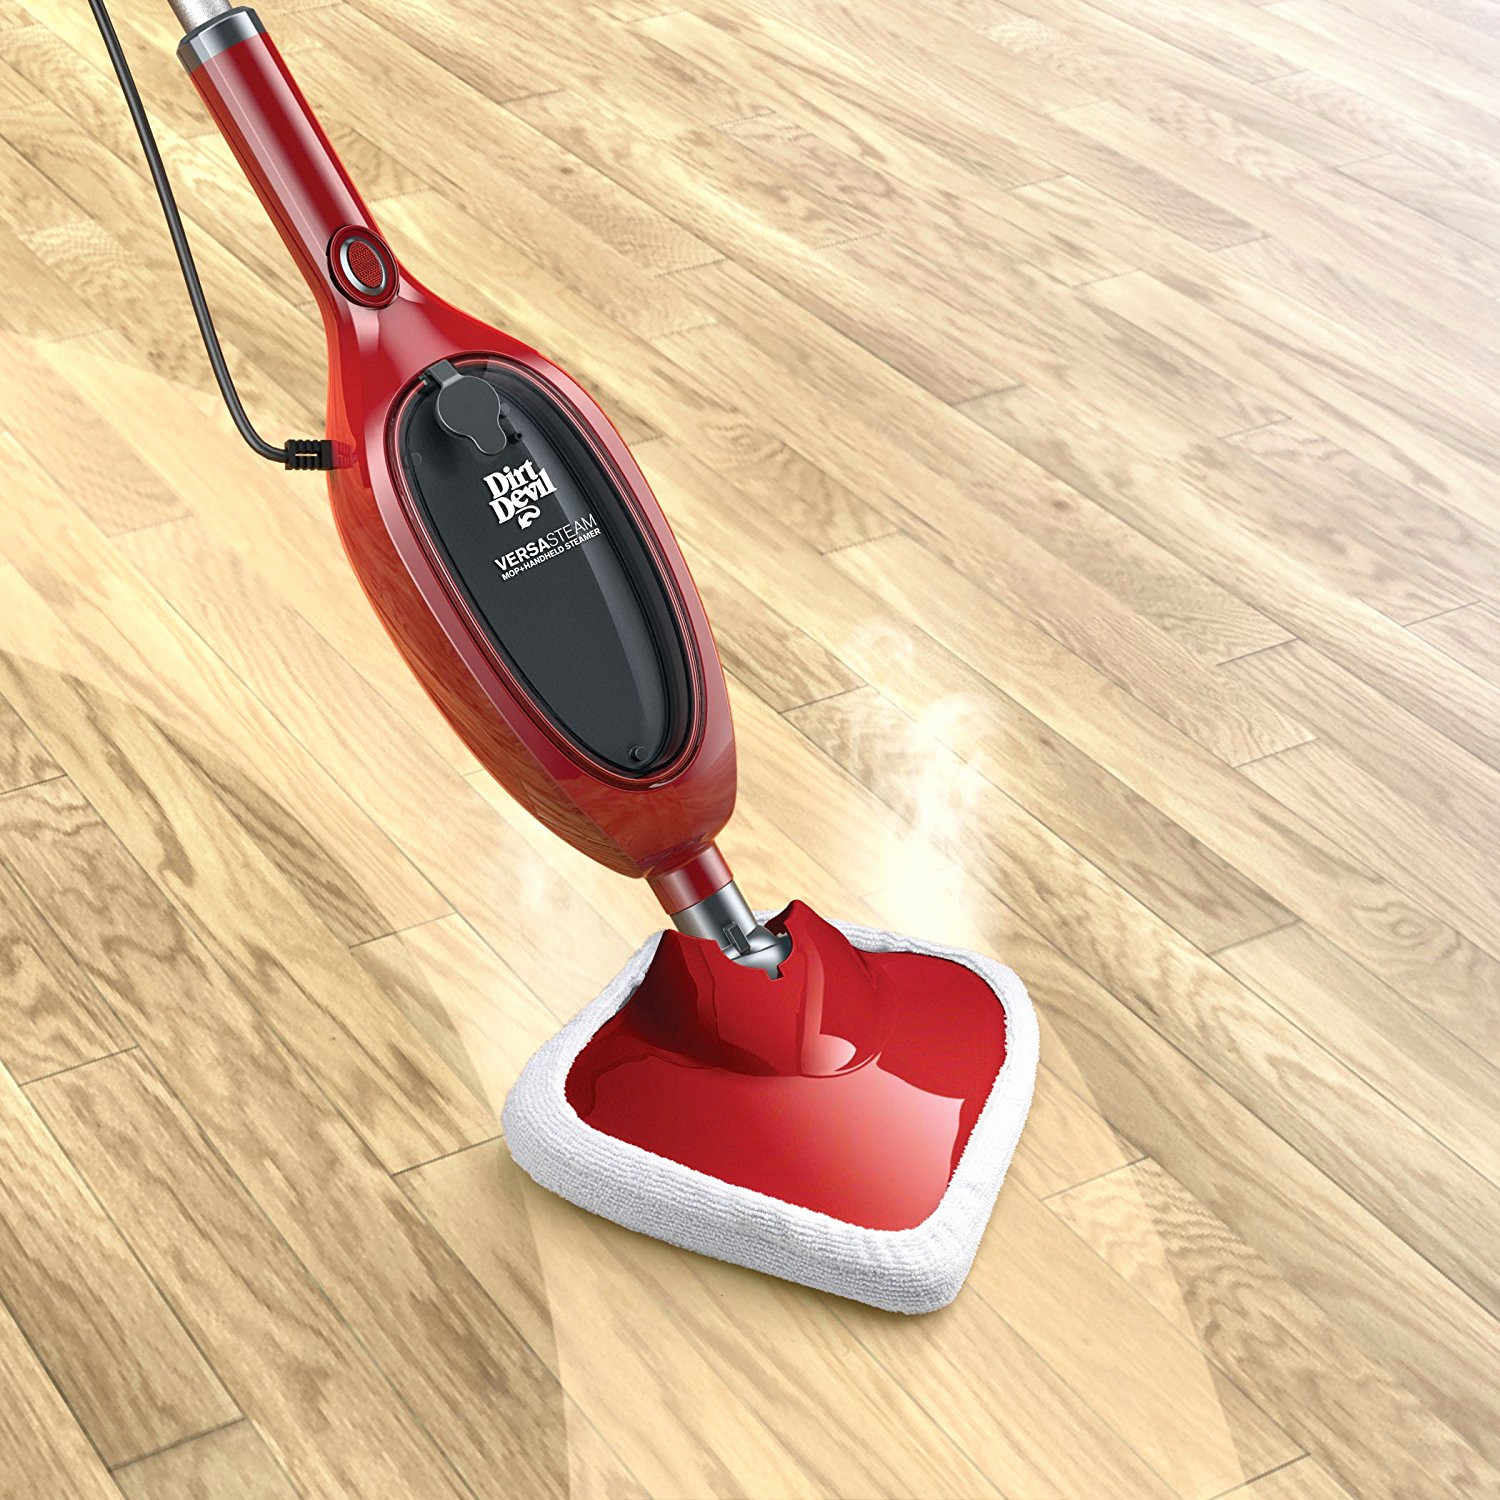 Shark Steam Mop Hardwood Floor Cleaner Of Cleaning Ceramic Tile Floors Steam Mop New the 4 Best Steam Mops Tile Regarding Cleaning Ceramic Tile Floors Steam Mop Fresh 50 Luxury How to Clean Tile Floors and Grout